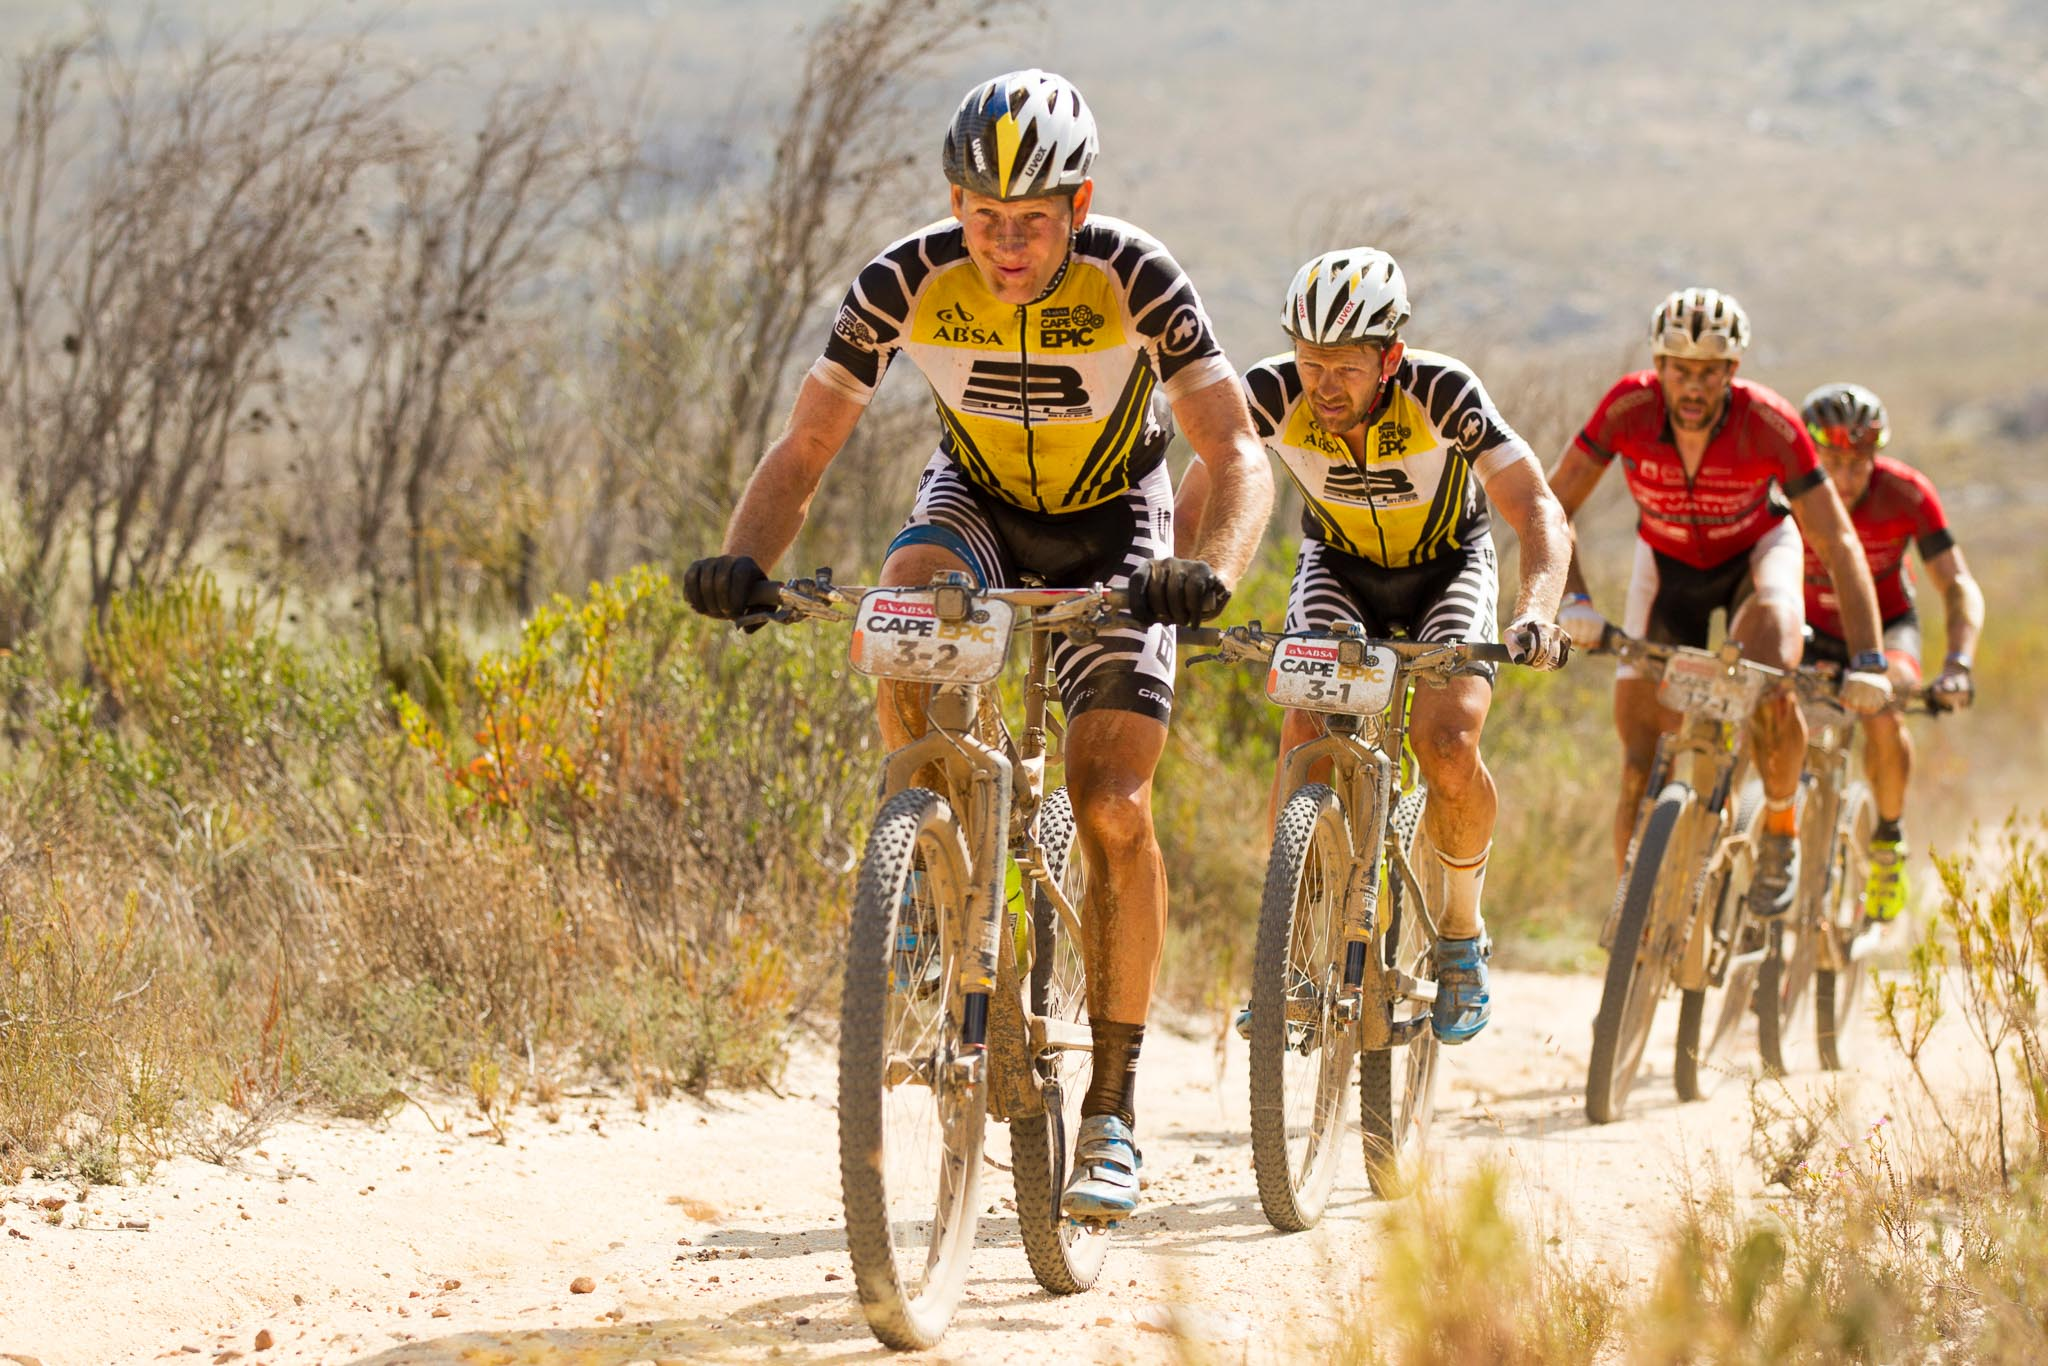 Urs Huber & Karl Platt of Bulls lead Nicola Rohrbach & Matthias Pfrommer of Centurion Vaude by Meerendal 2 during stage 4 of the 2016 Absa Cape Epic Mountain Bike stage race from the Cape Peninsula University of Technology in Wellington, South Africa on the 17th March 2016 Photo by Gary Perkin/Cape Epic/SPORTZPICS PLEASE ENSURE THE APPROPRIATE CREDIT IS GIVEN TO THE PHOTOGRAPHER AND SPORTZPICS ALONG WITH THE ABSA CAPE EPIC ace2016